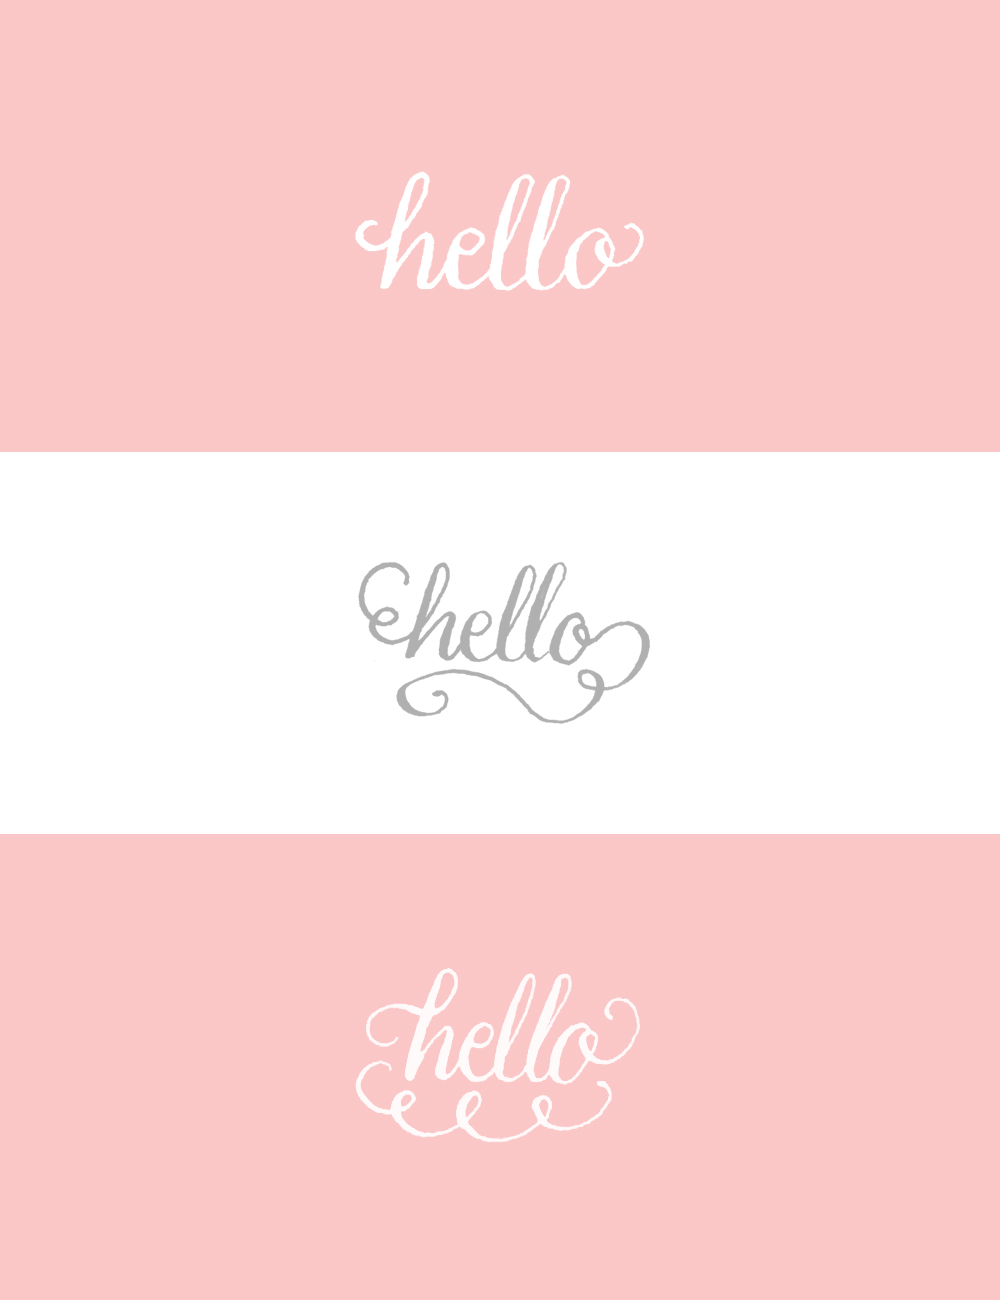 Hello Photoshop Brushes via Happy Hands Project